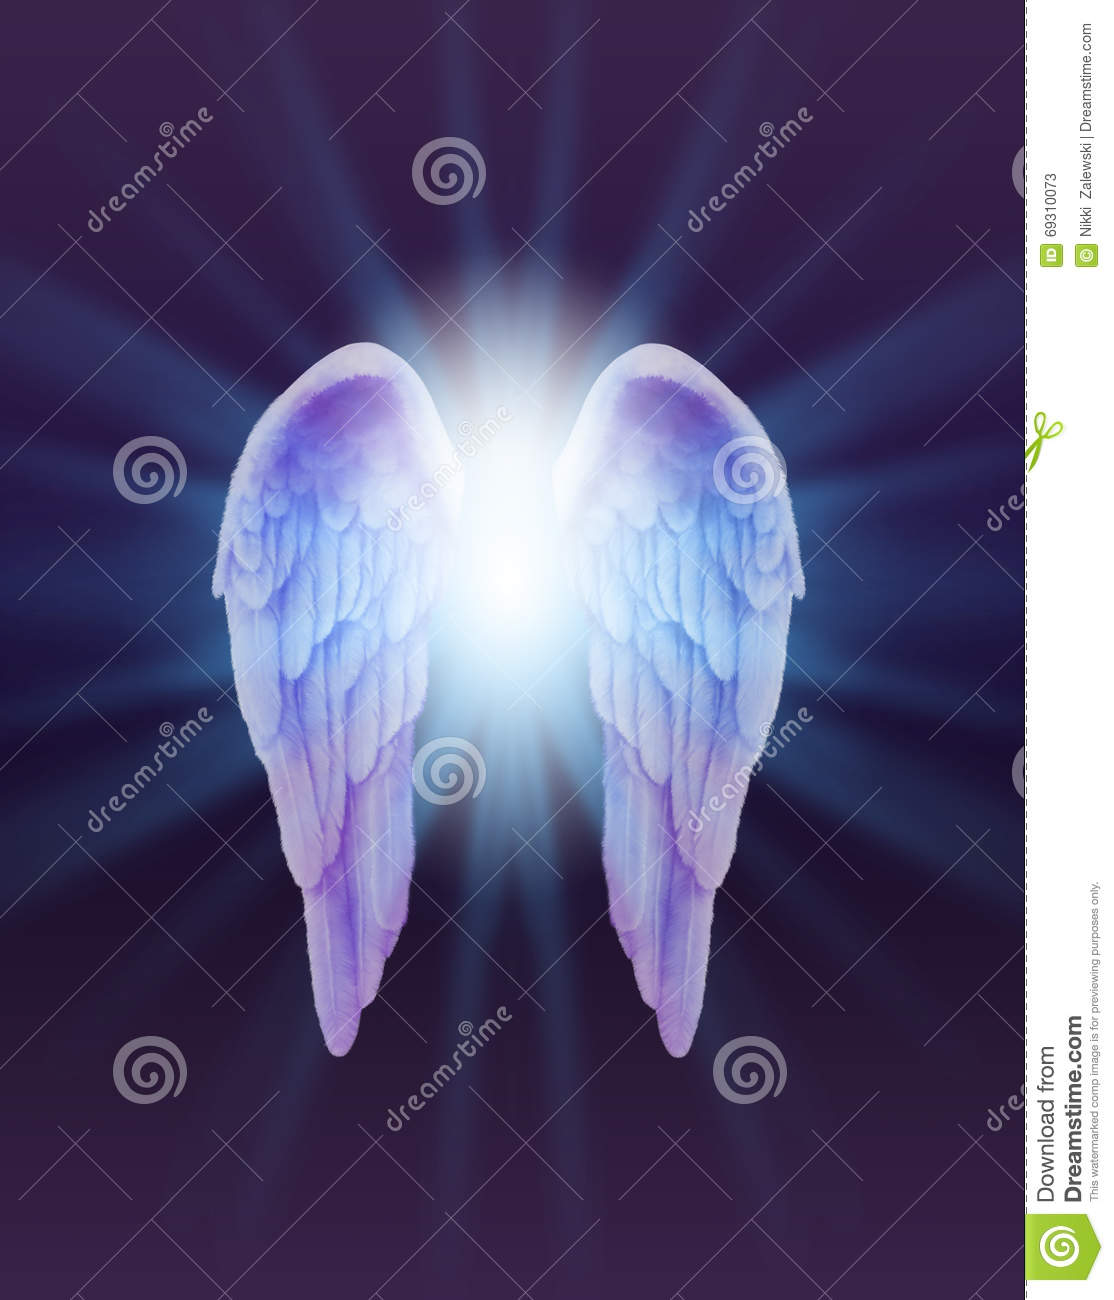 blue and lilac angel wings on a dark background stock